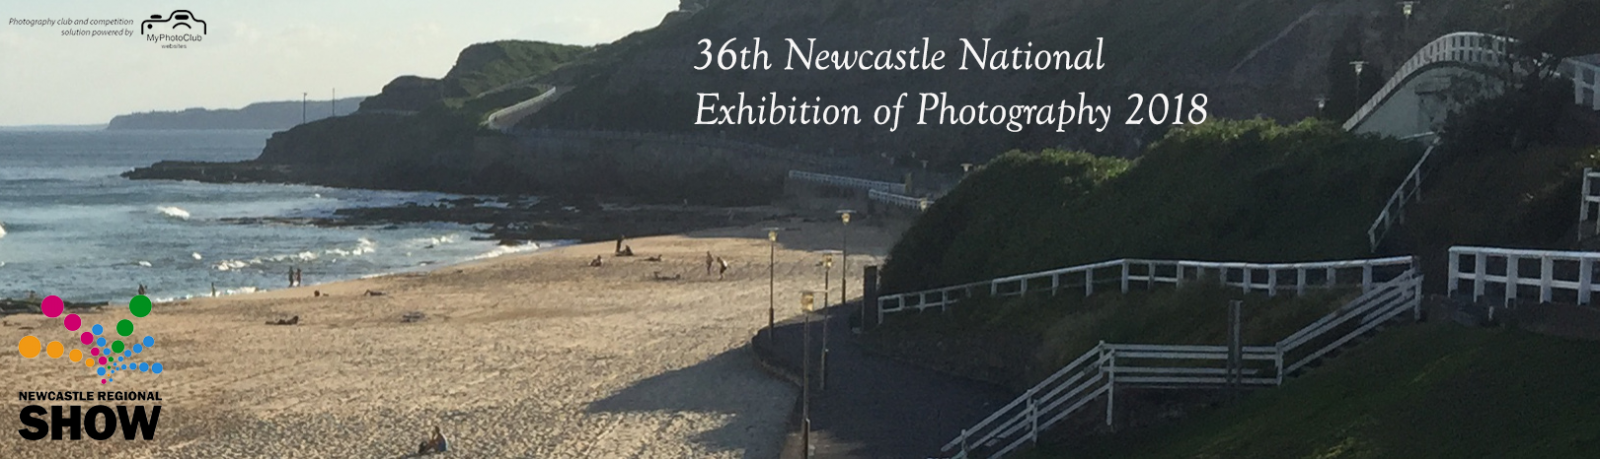 36th Newcastle National Exhibition of Photography 2018